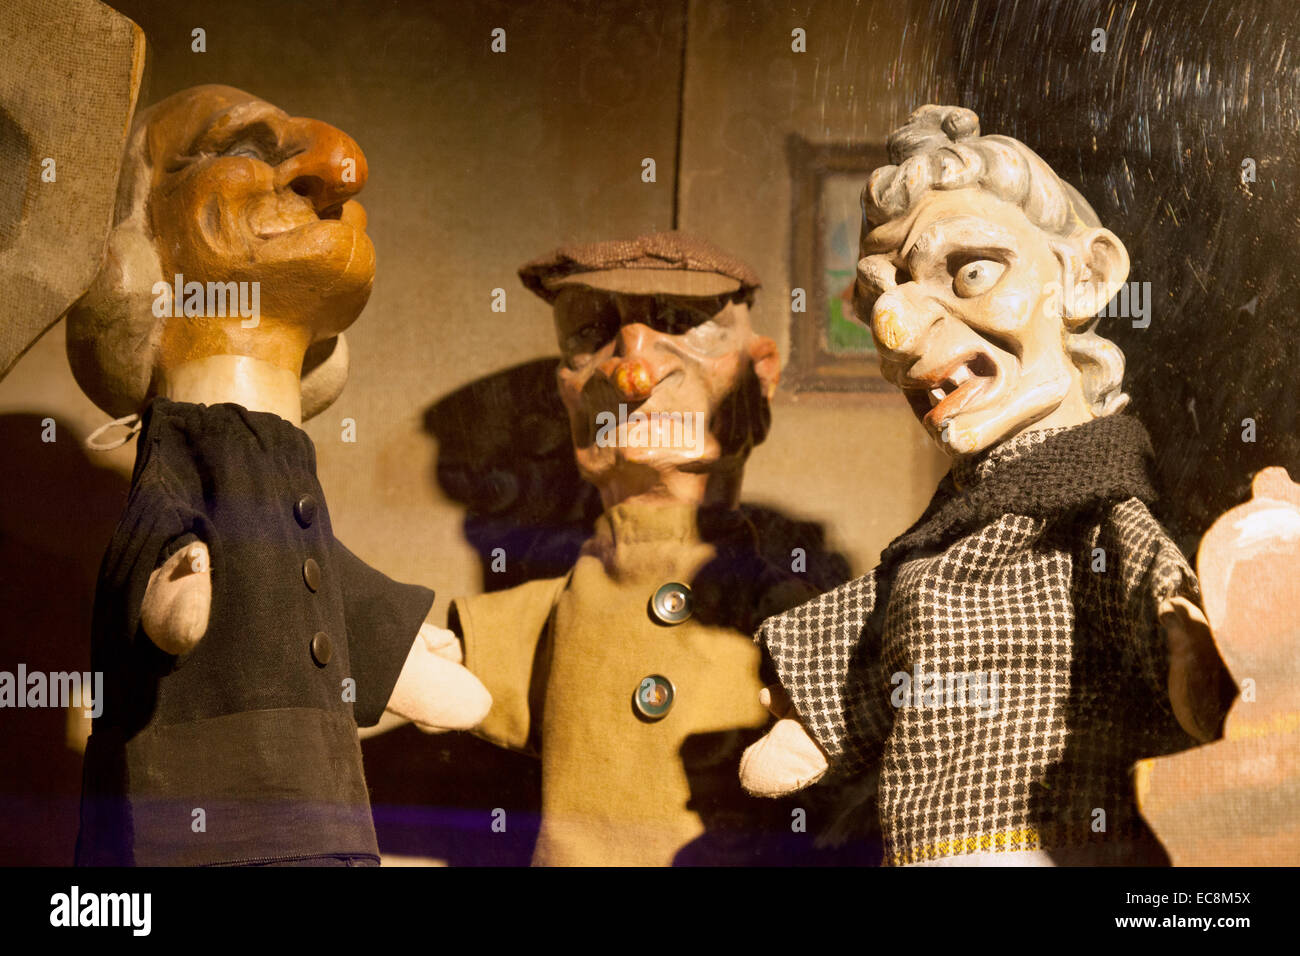 Old wooden puppets in the Museum of Folklore, Bruges, Belgium - Stock Image